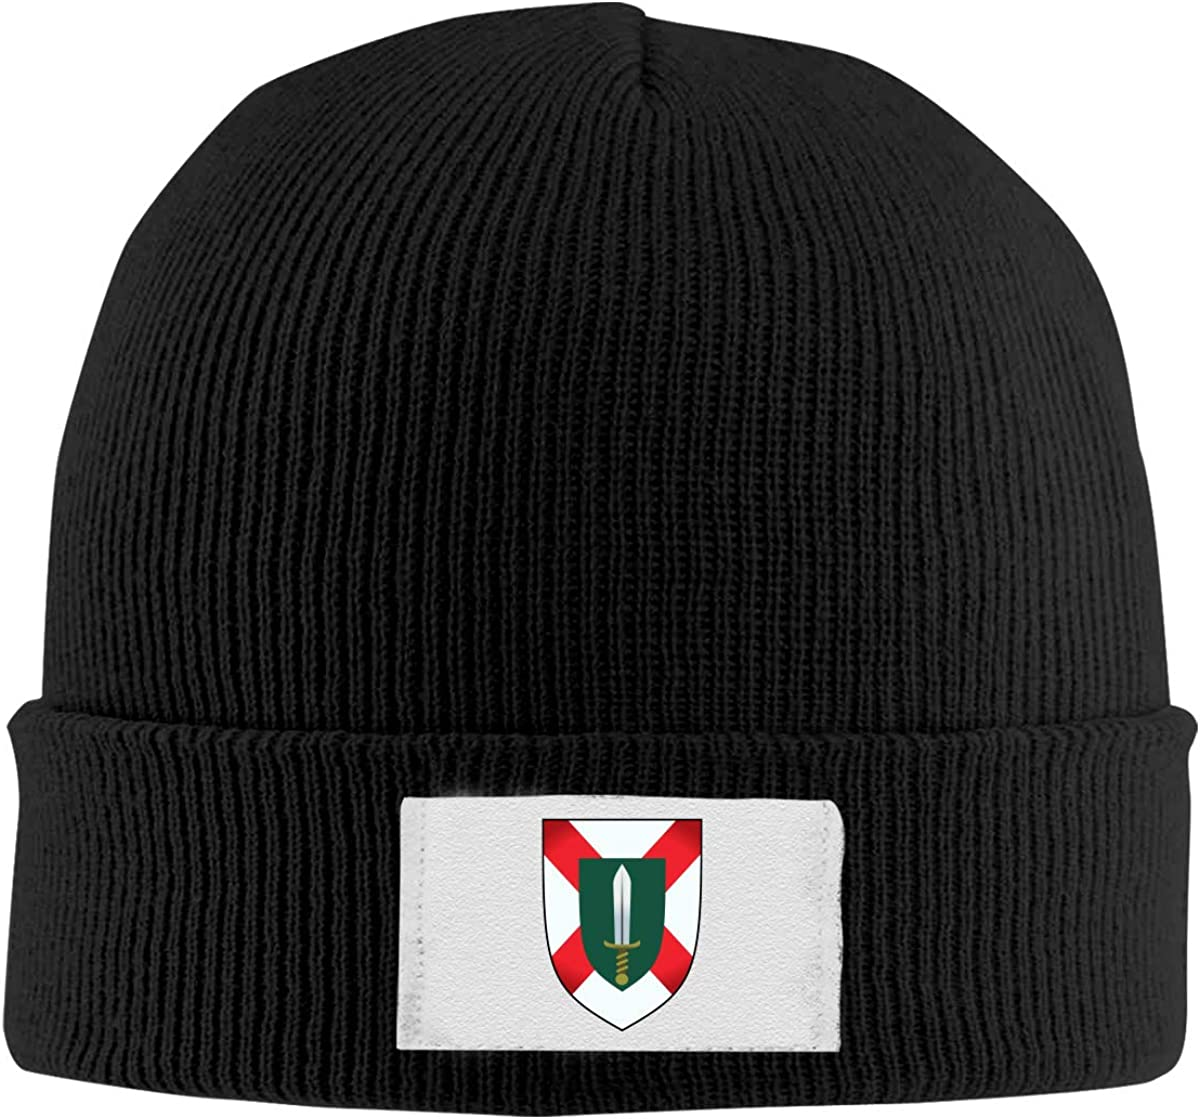 RZMdSG Coat of Arms of The Alabama State Defense Force Unisex Winter Printed Warm Knitting Hats Skull Cap